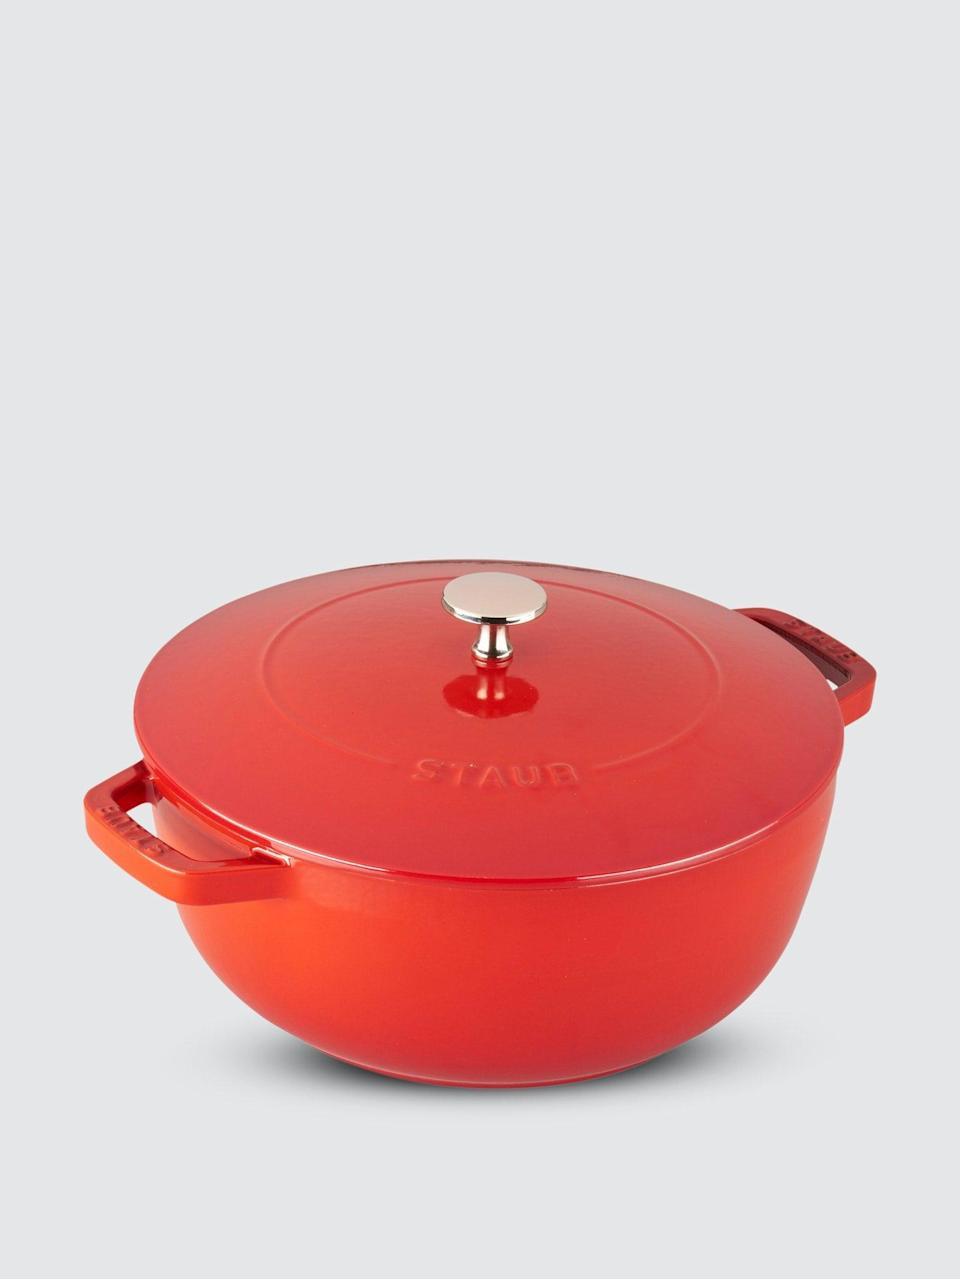 """<br><br><strong>Staub</strong> 3.75-qt Essential French Oven, $, available at <a href=""""https://go.skimresources.com/?id=30283X879131&url=https%3A%2F%2Fshop-links.co%2F1735353633737415962"""" rel=""""nofollow noopener"""" target=""""_blank"""" data-ylk=""""slk:Verishop"""" class=""""link rapid-noclick-resp"""">Verishop</a>"""